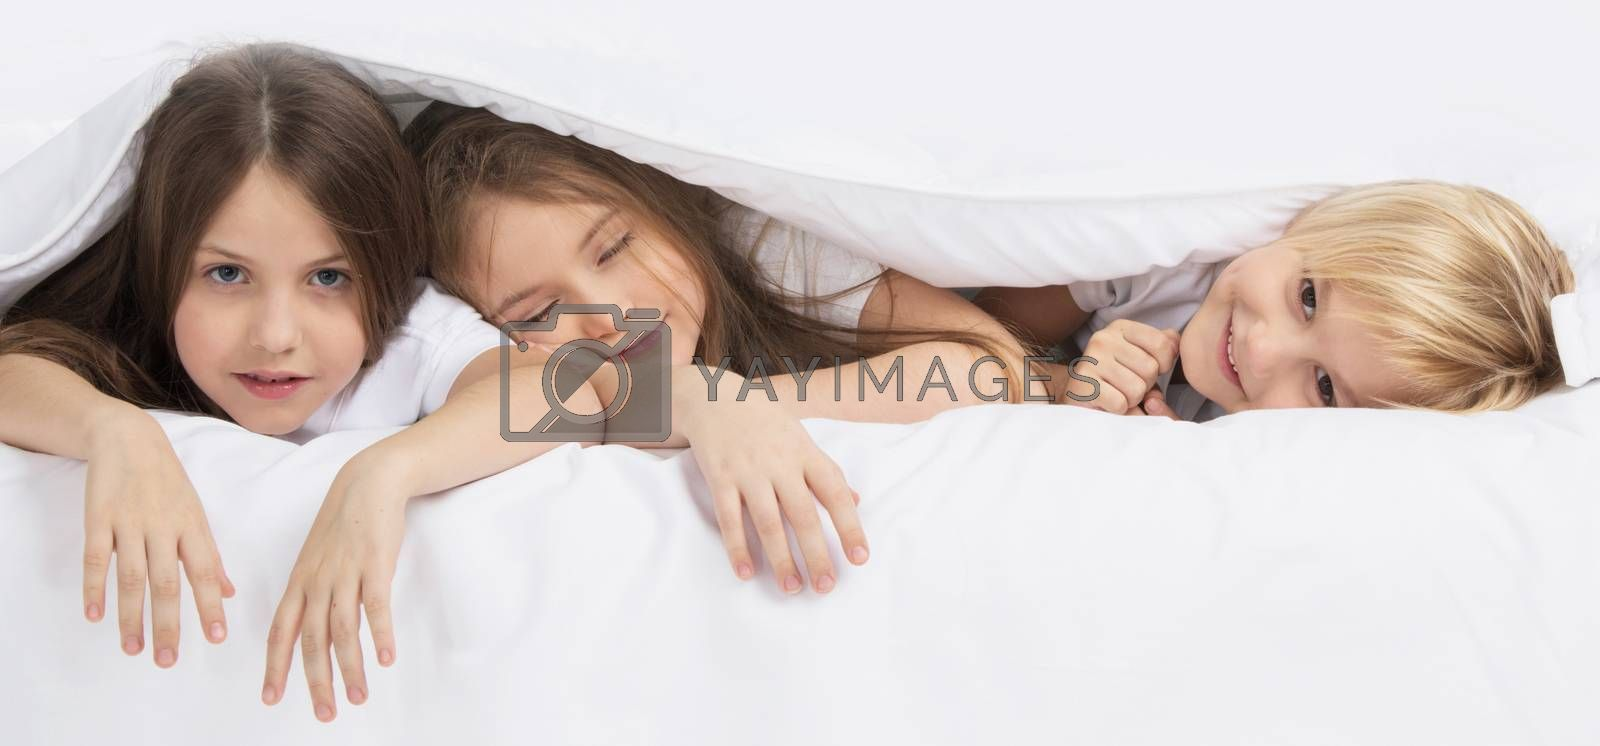 Health, beauty and childhood concept - three smiling children waking up in bed under one blanket at home